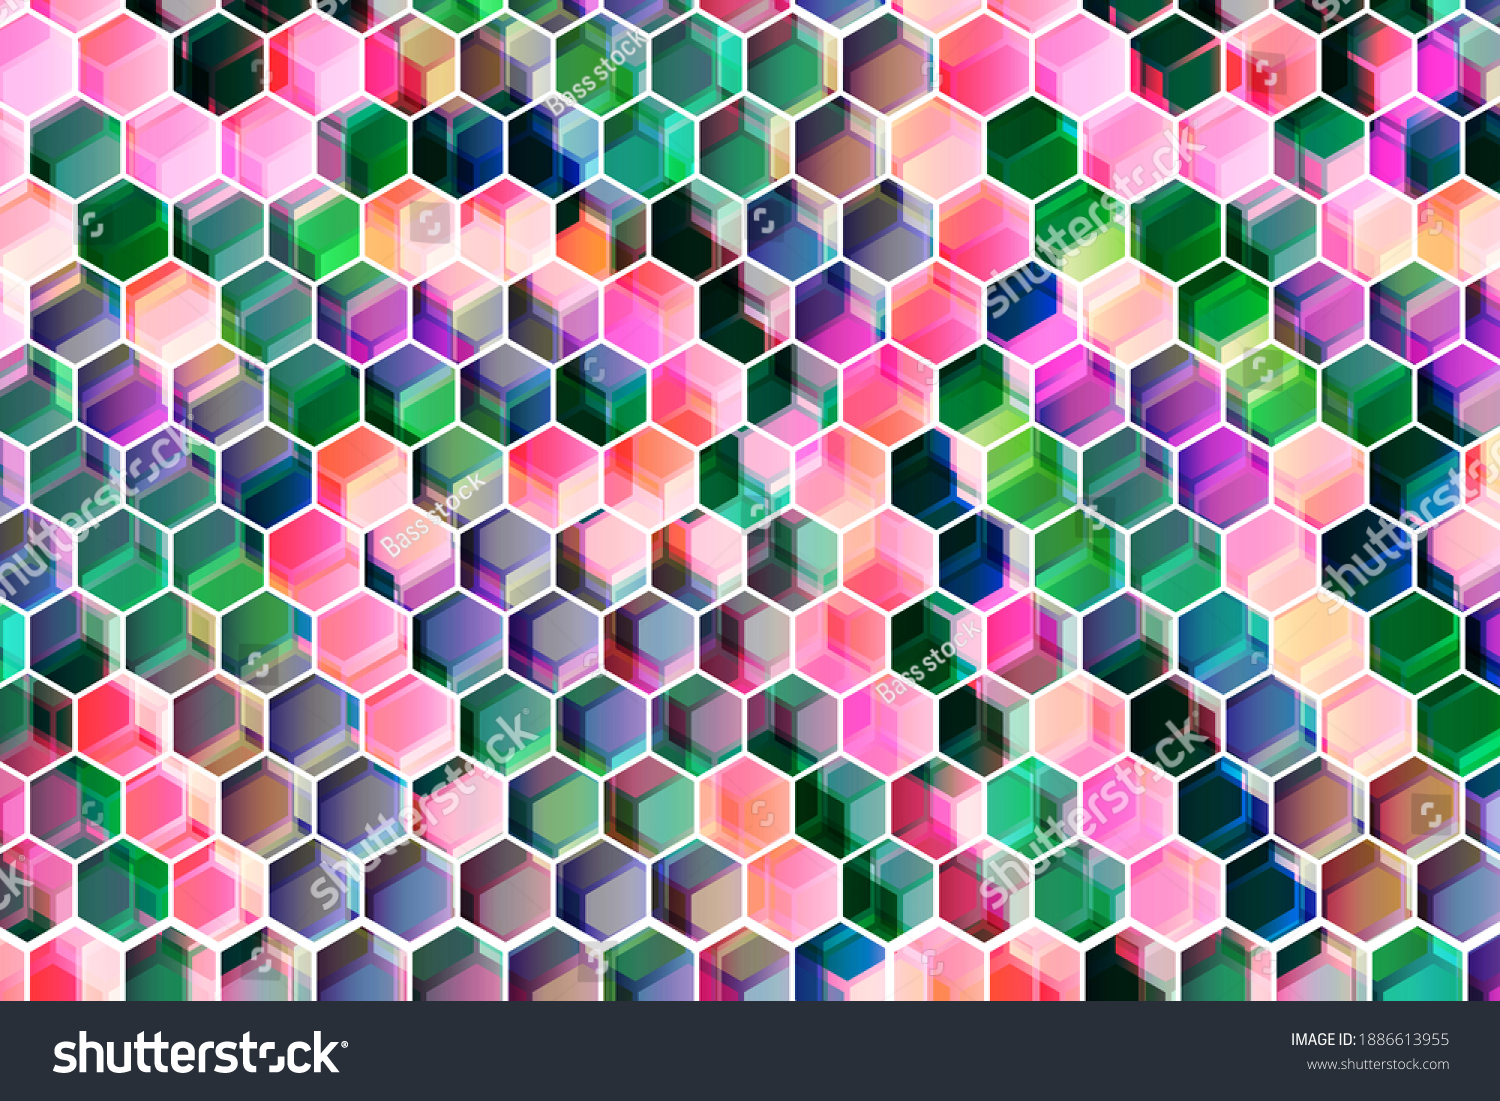 stock-photo-abstract-colorful-geometric-